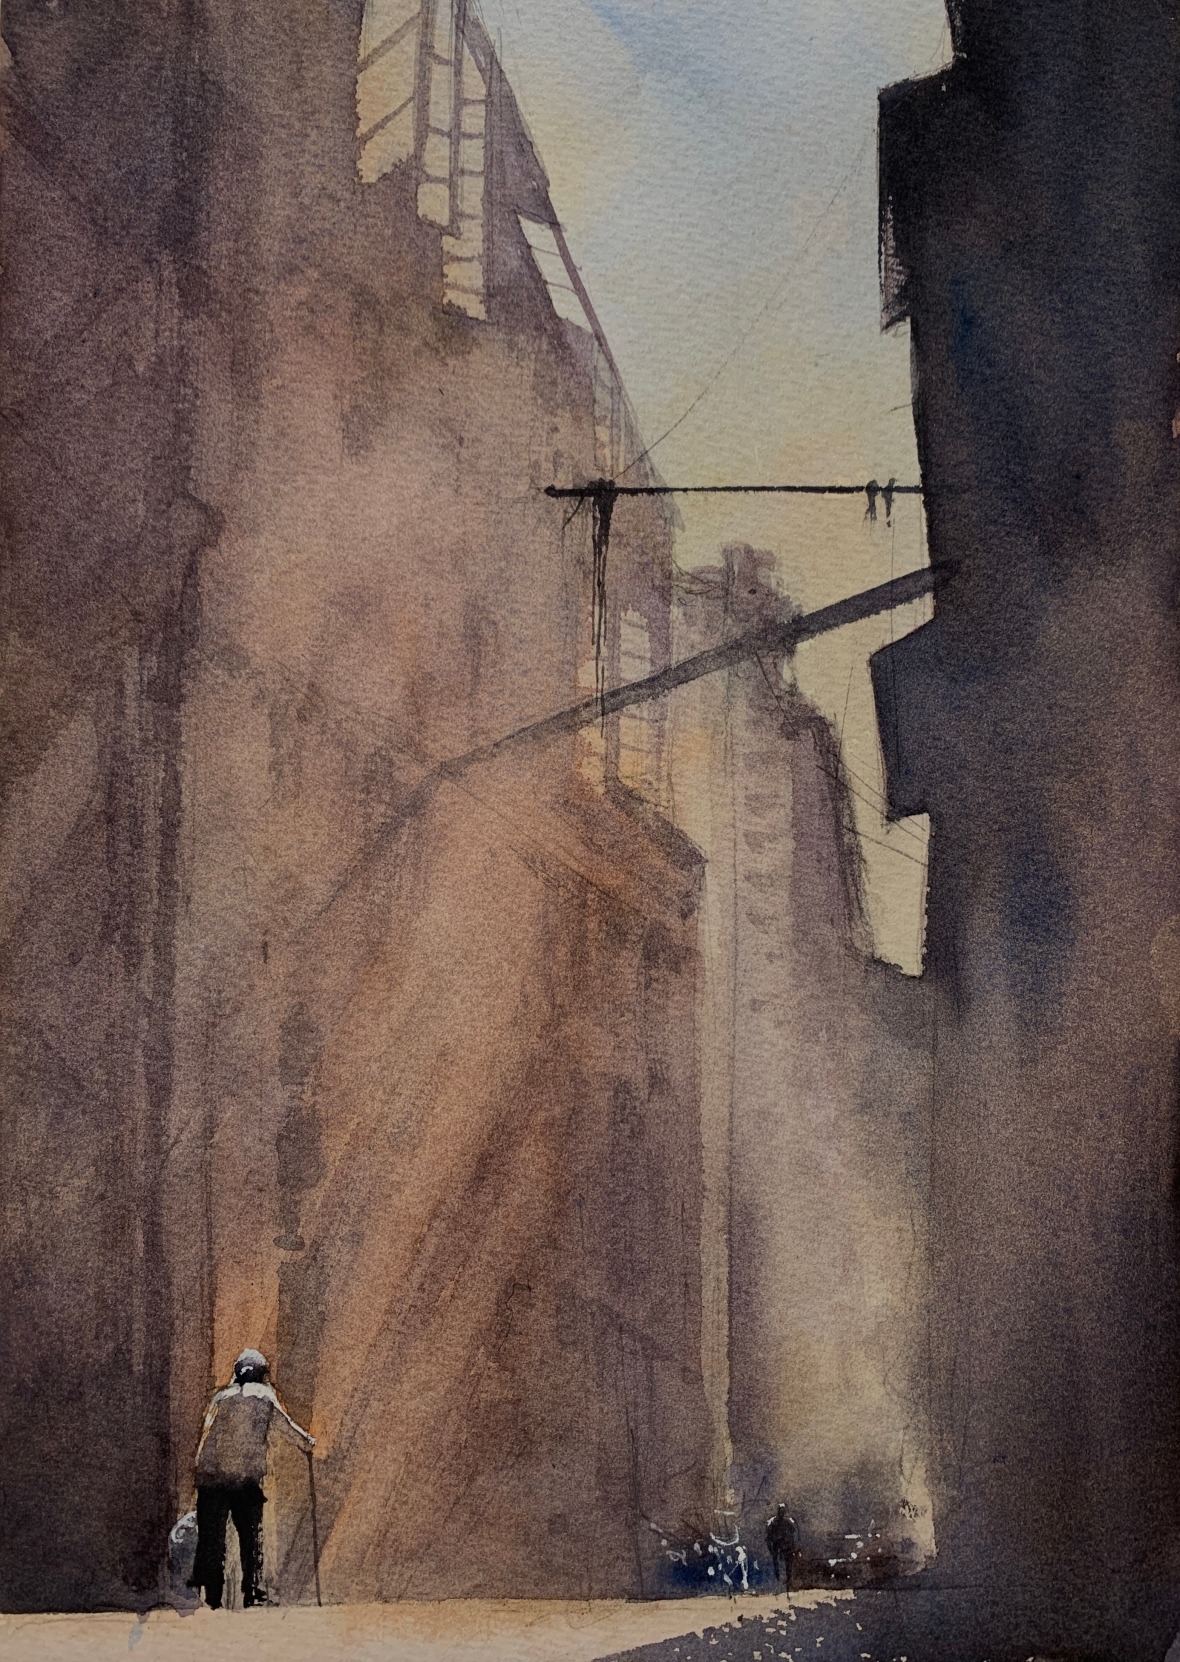 Watercolour painting based on a black and white photograph by Fan Ho titled 'Mystic Alley' by artist John Haywood